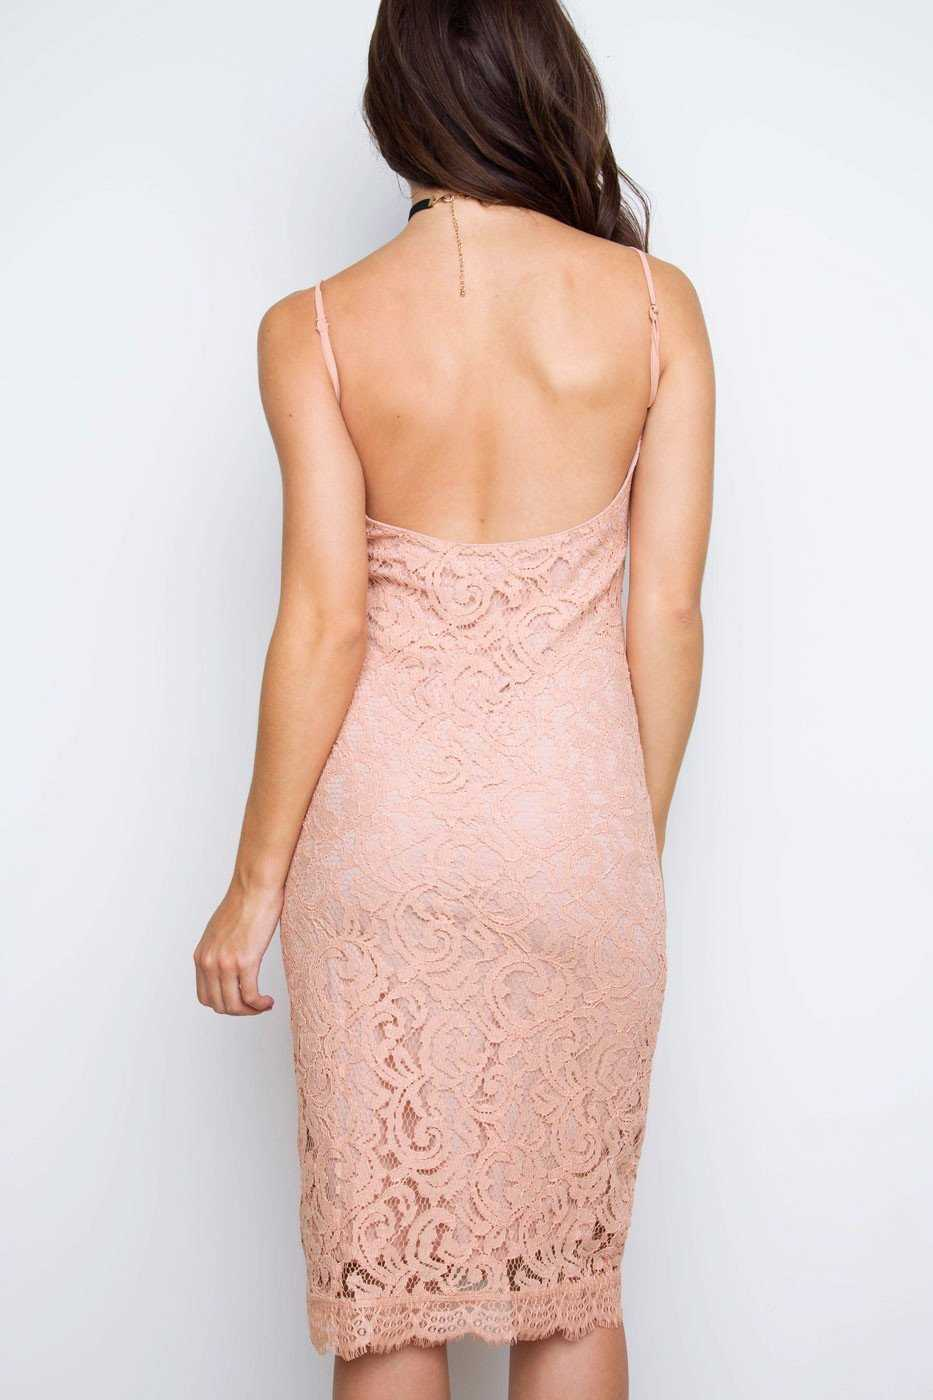 Dresses - Clare Nude Lace Dress